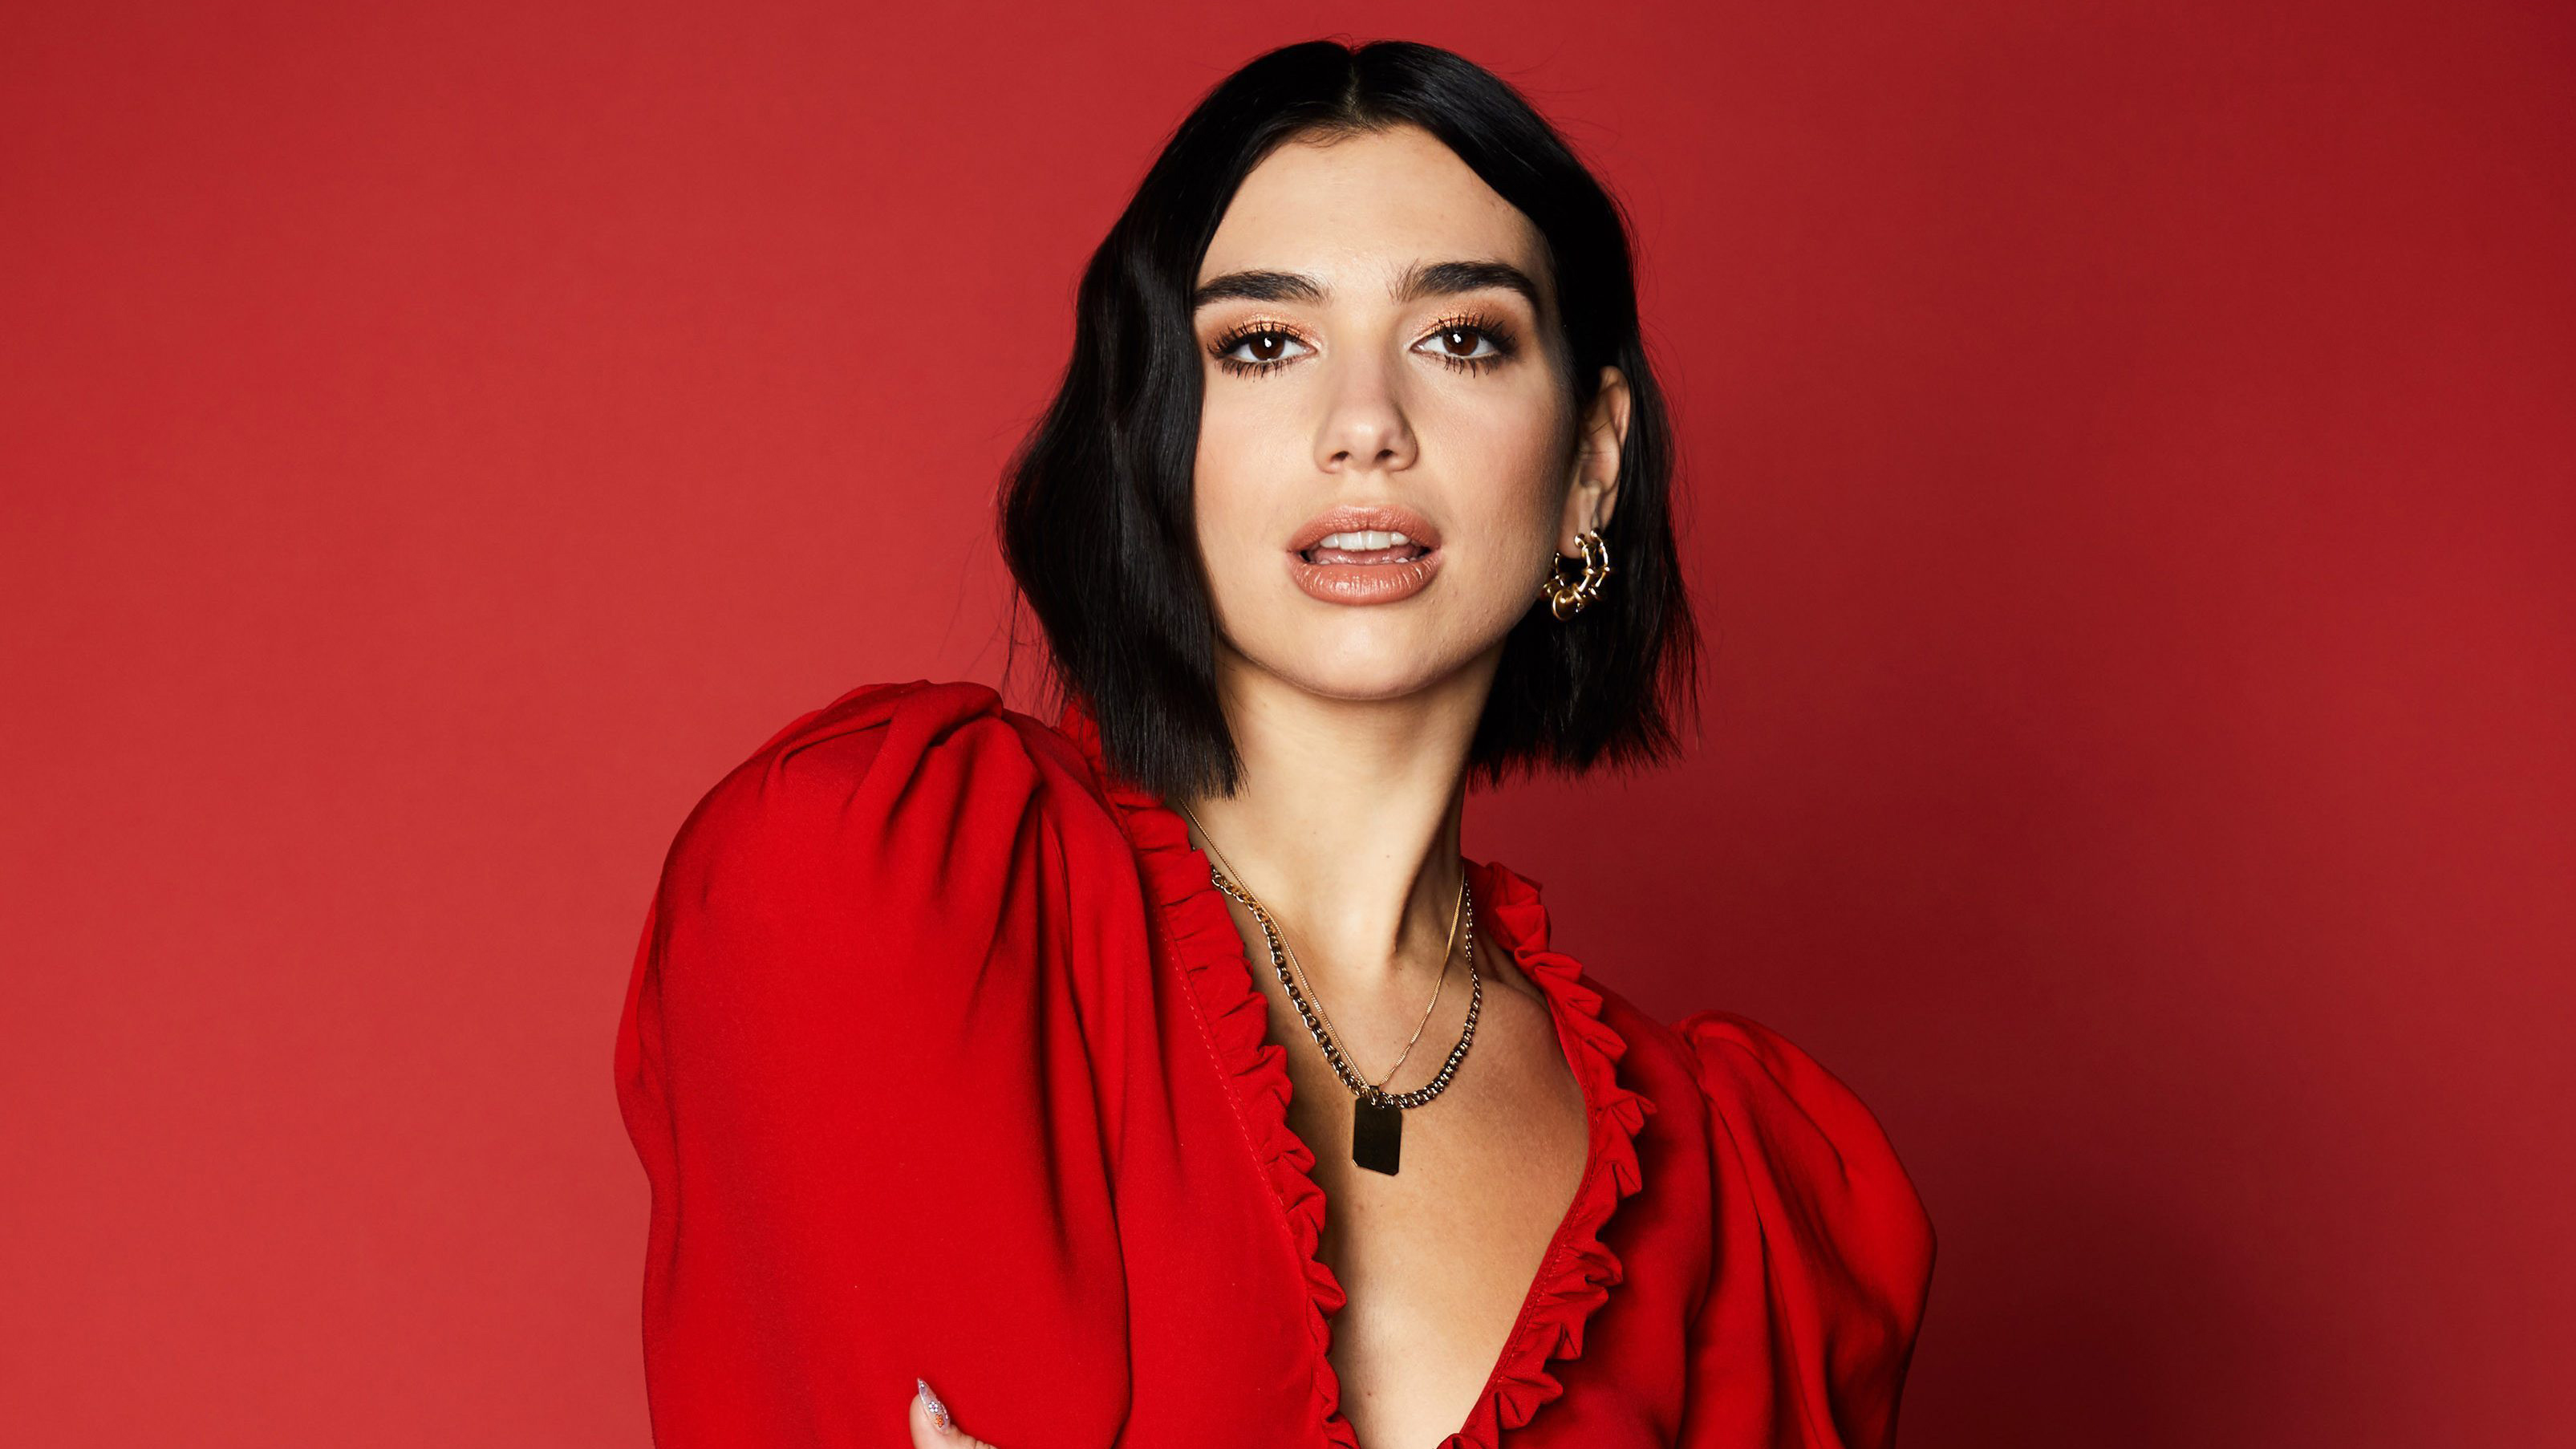 dua lipa background wallpaper 71617